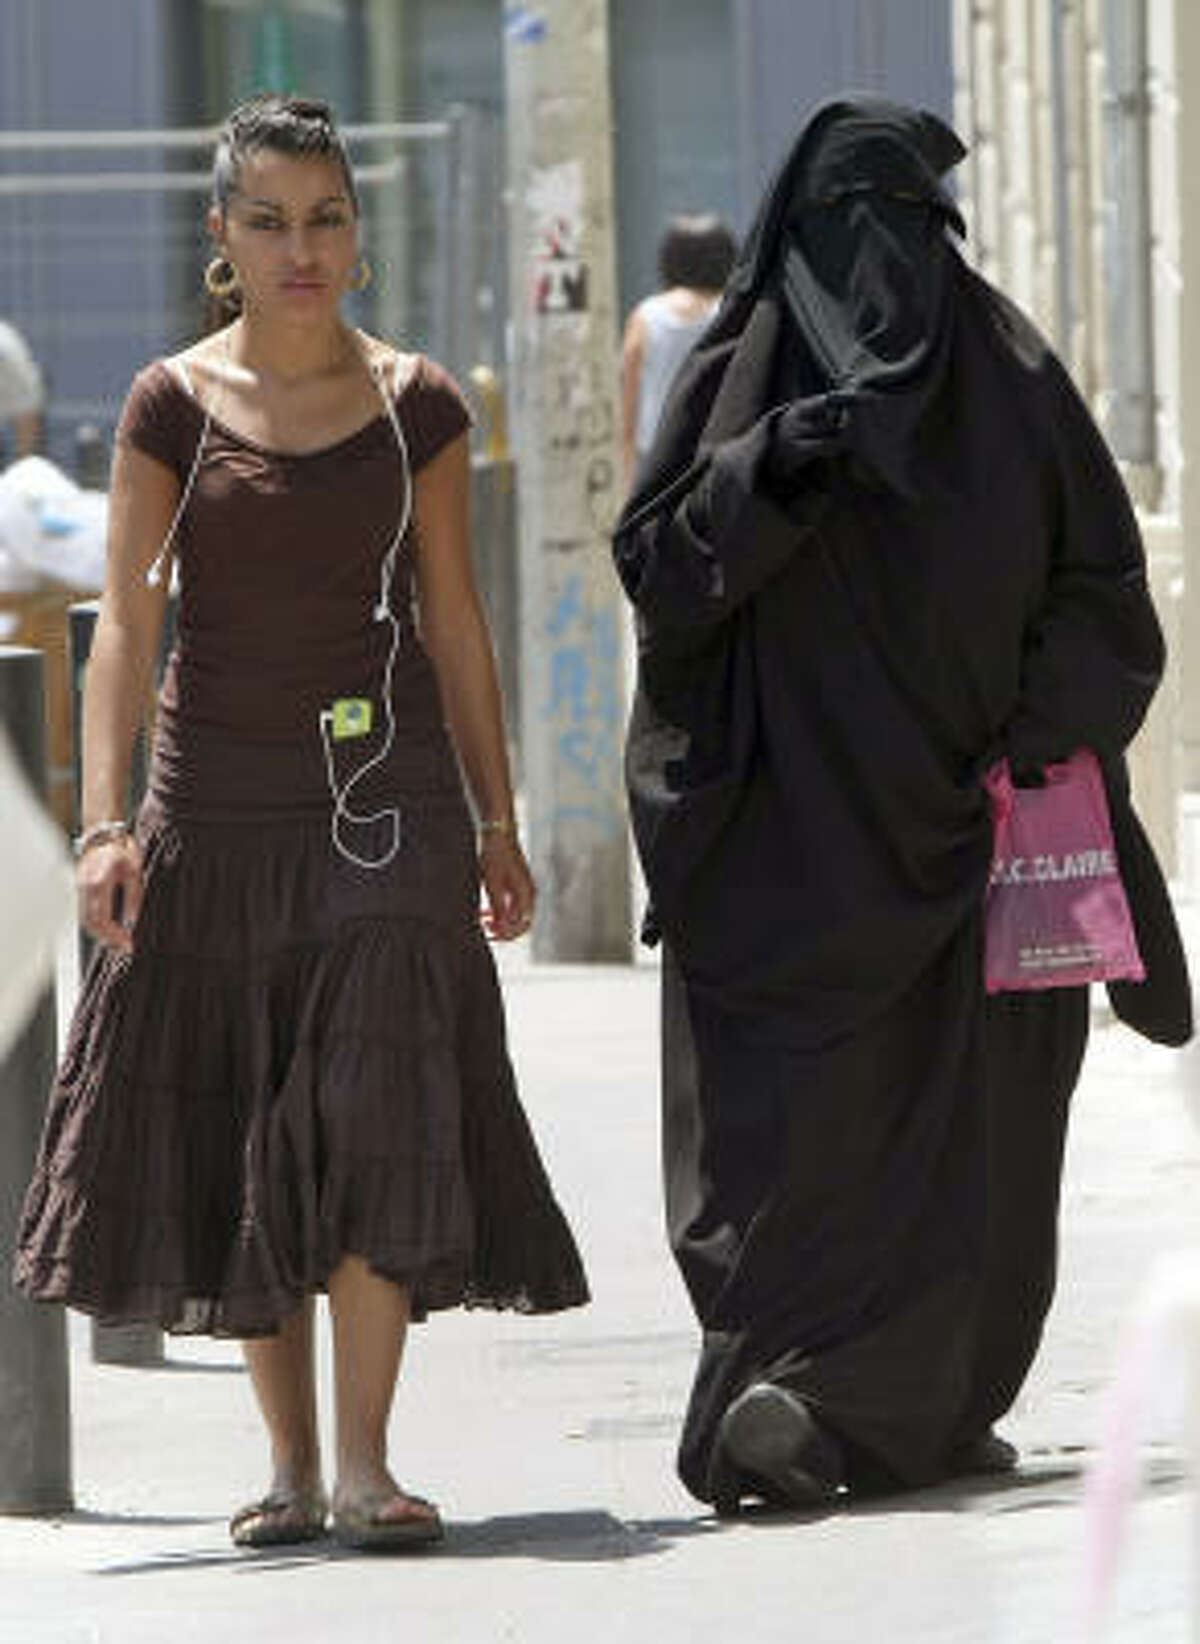 Two women, one wearing the niqab, a veil worn by the most conservative Muslims that exposes only a woman's eyes, right, walk side by side, in the Belsunce district of downtown Marseille, central France, Friday June 19, 2009. The French government's spokesman says he favors the creation of a parliamentary commission to study the small but growing trend of burqa wear in France. Luc Chatel says the commission could possibly propose legislation aimed at banning the burqa and other fully covering garments worn by some Muslim women.